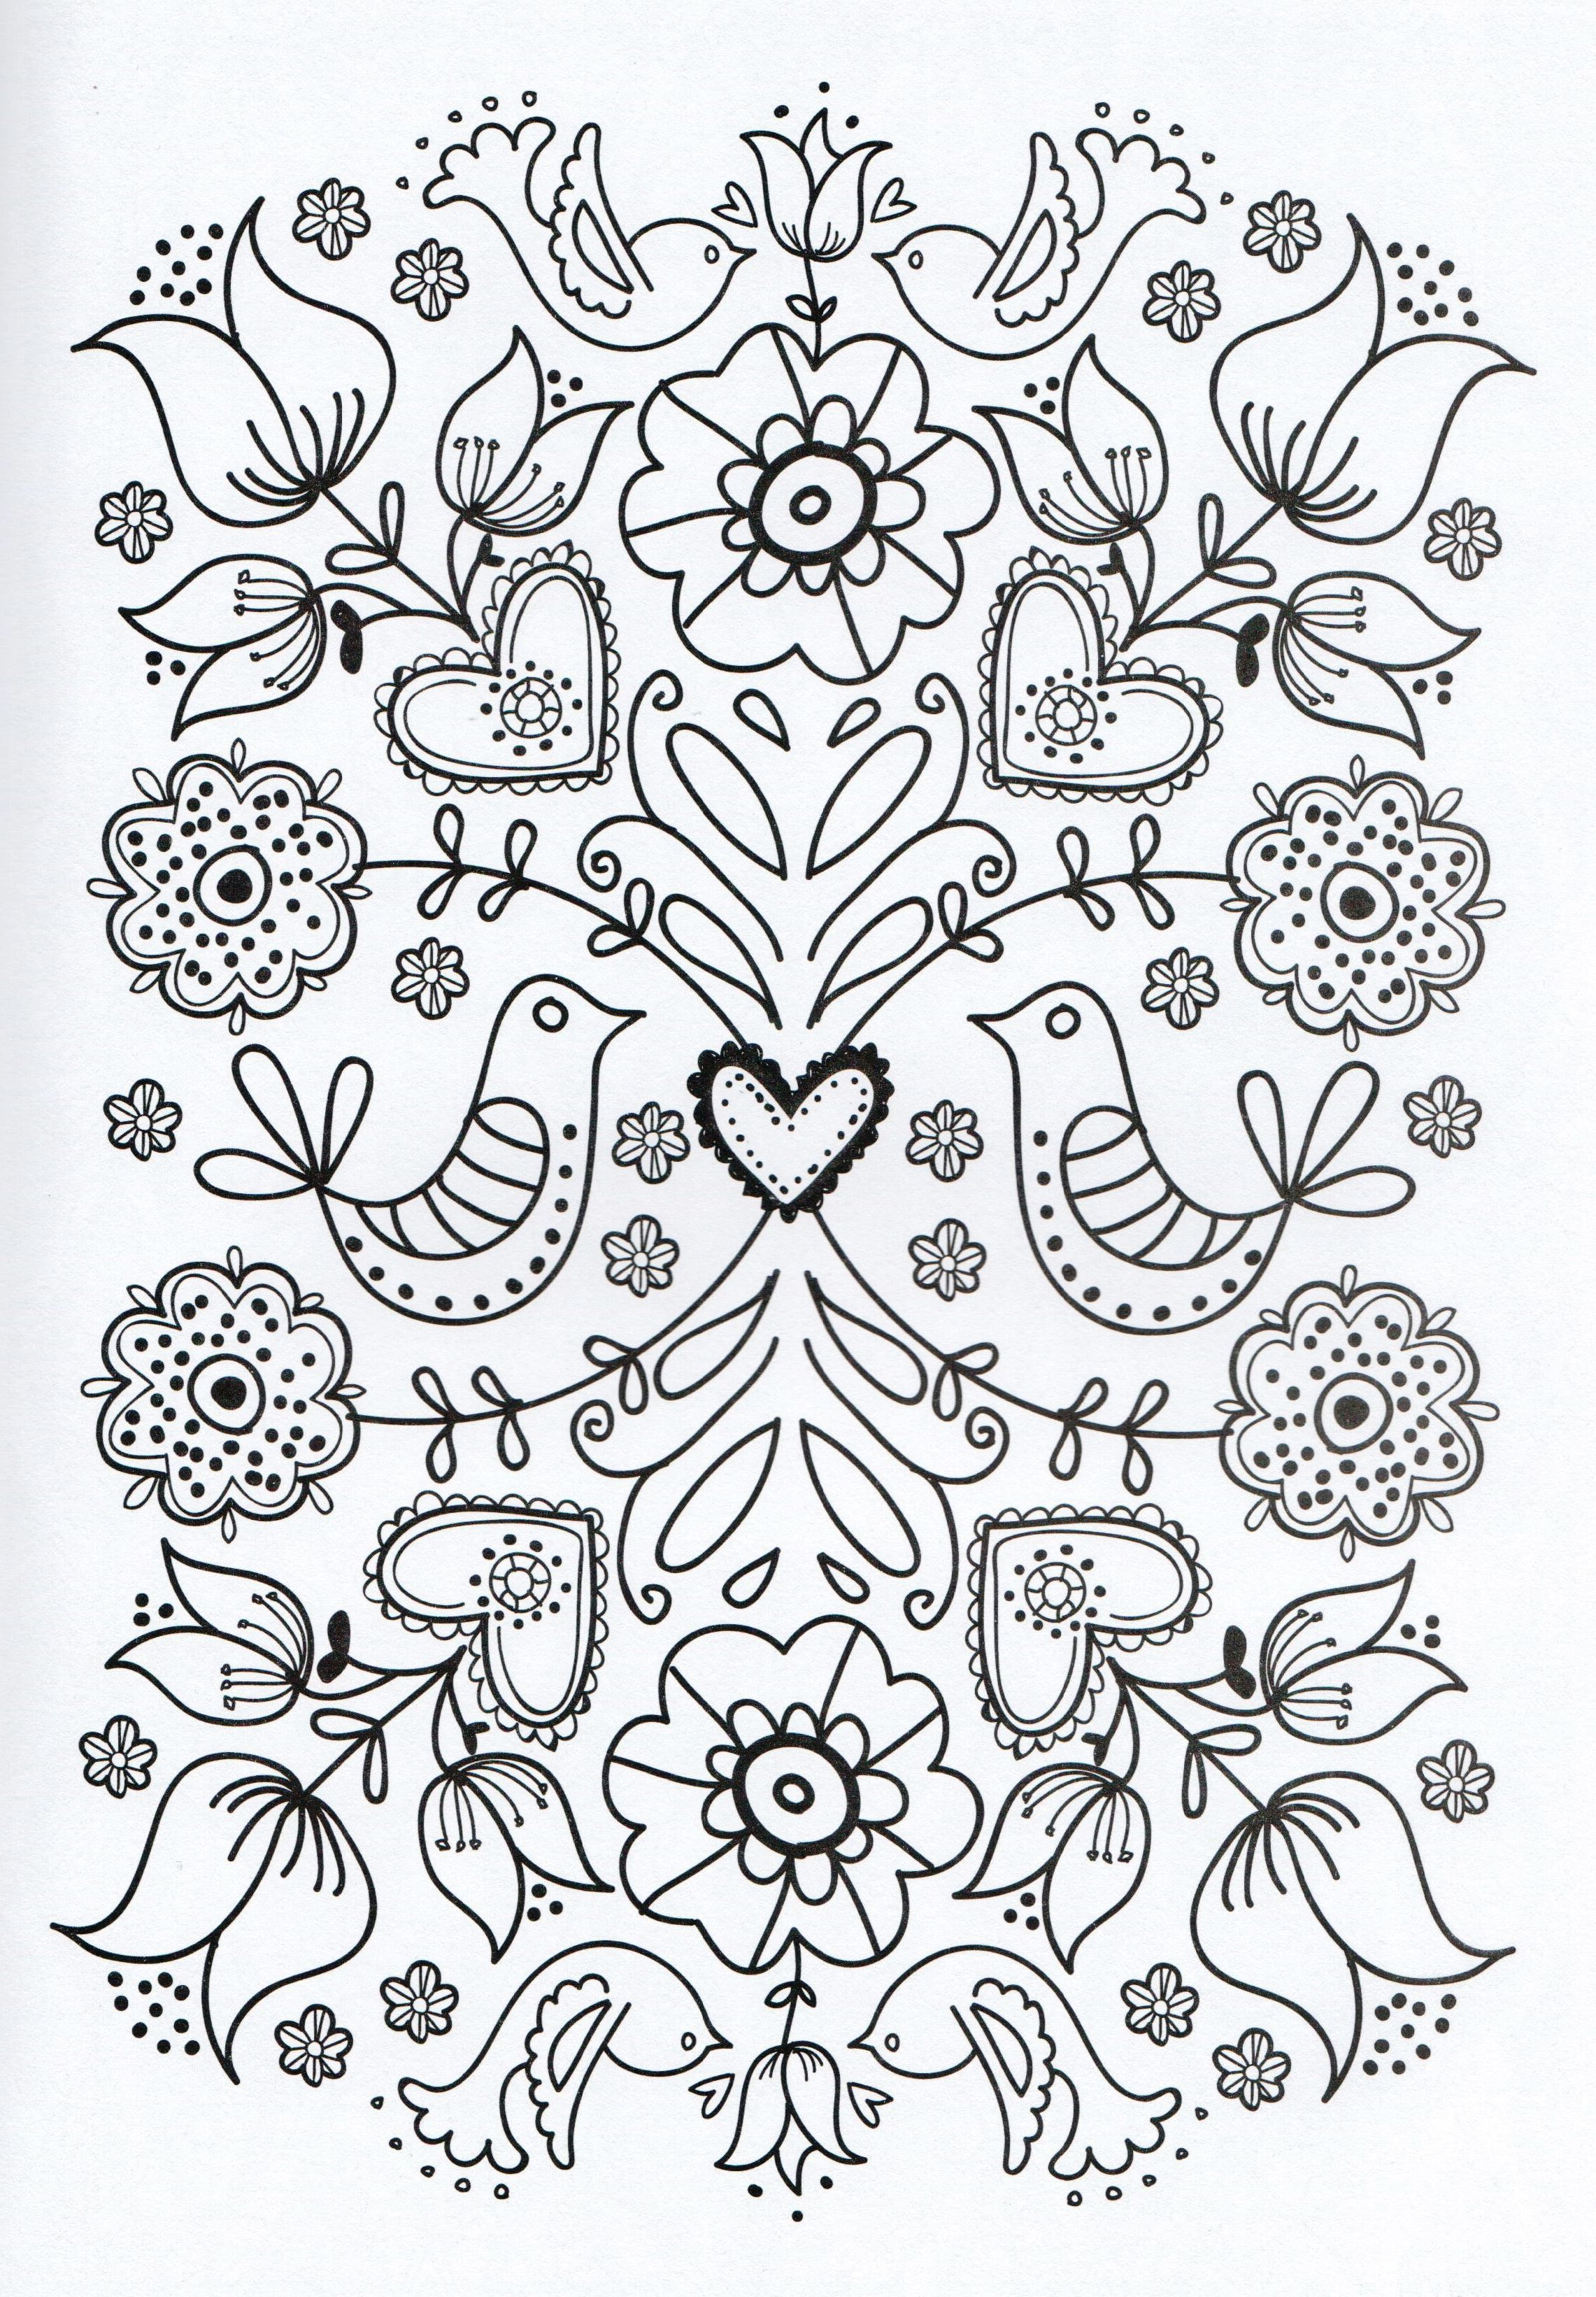 Adult Coloring Page   Dibujos Para Colorear//coloring Pages